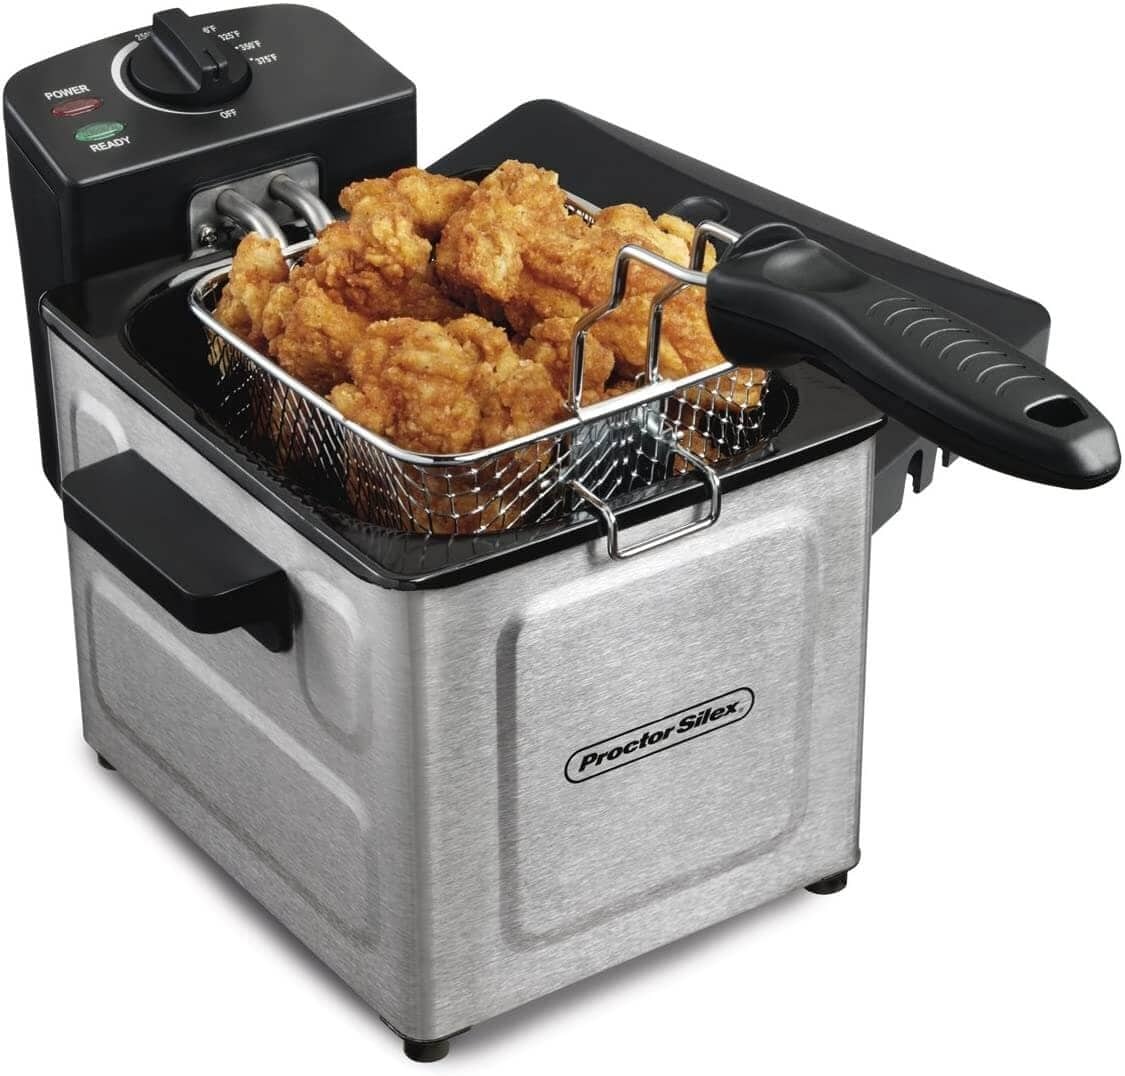 Proctor Silex Deep Fryer with Frying Basket